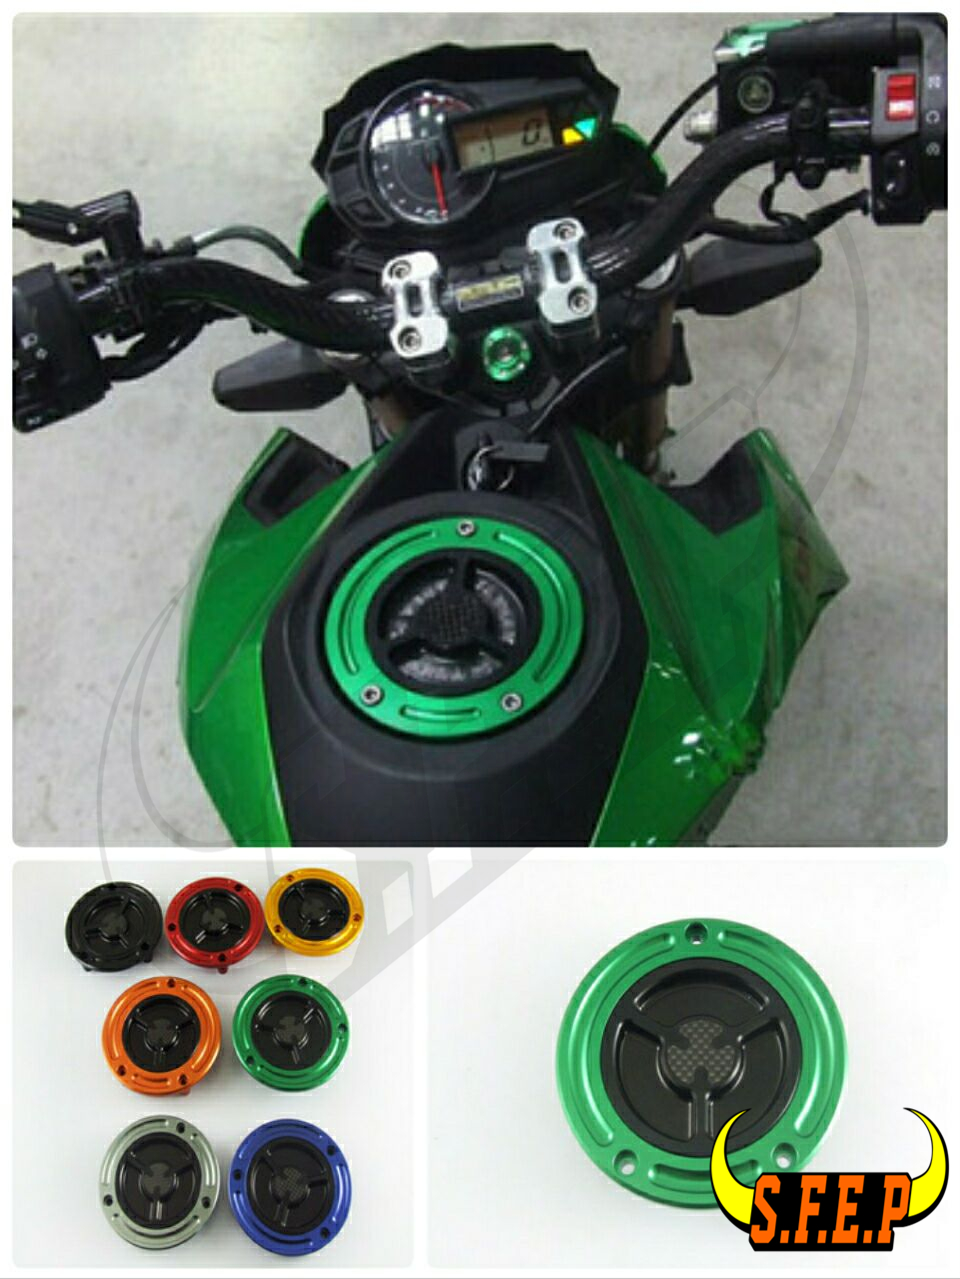 Motorcycle Fuel Gas Tank Cap Carbon Fiber Inlay Petrol Cove For Kawasaki Z125 Z750 Z800 Z1000 ZX6R ZX10R Ninja250/300 arashi ninja250 motorcycle parts carbon fiber tank cover gas fuel protector case for kawasaki ninja250 2008 2009 2010 2011 2012